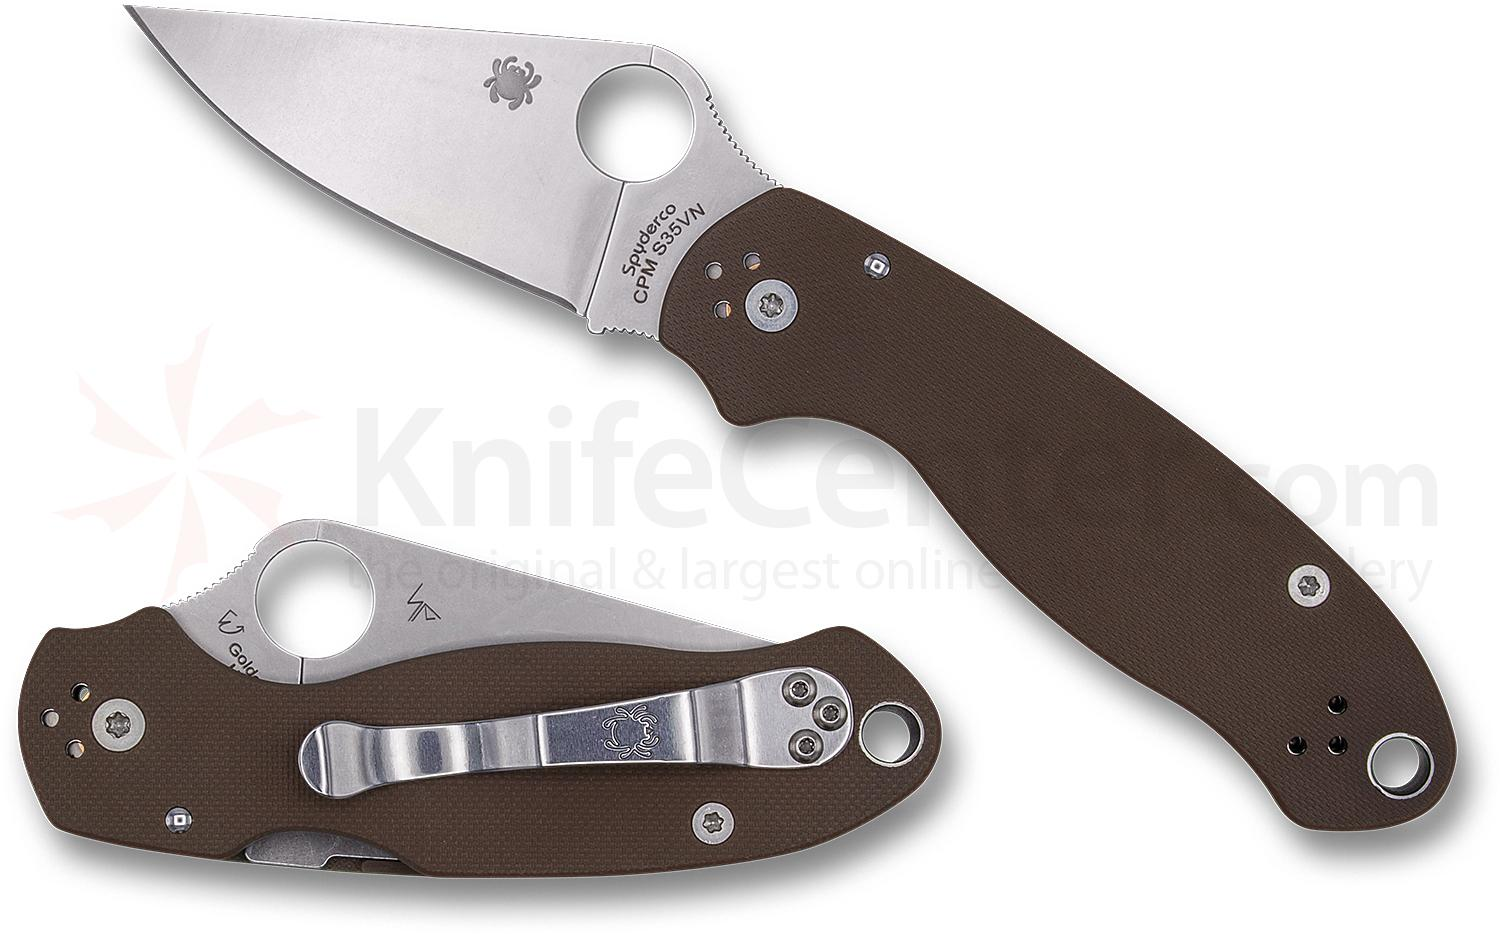 Spyderco Para 3 Folding Knife 3 inch S35VN Satin Plain Blade, Earth Brown G10 Handles (Paramilitary 3)